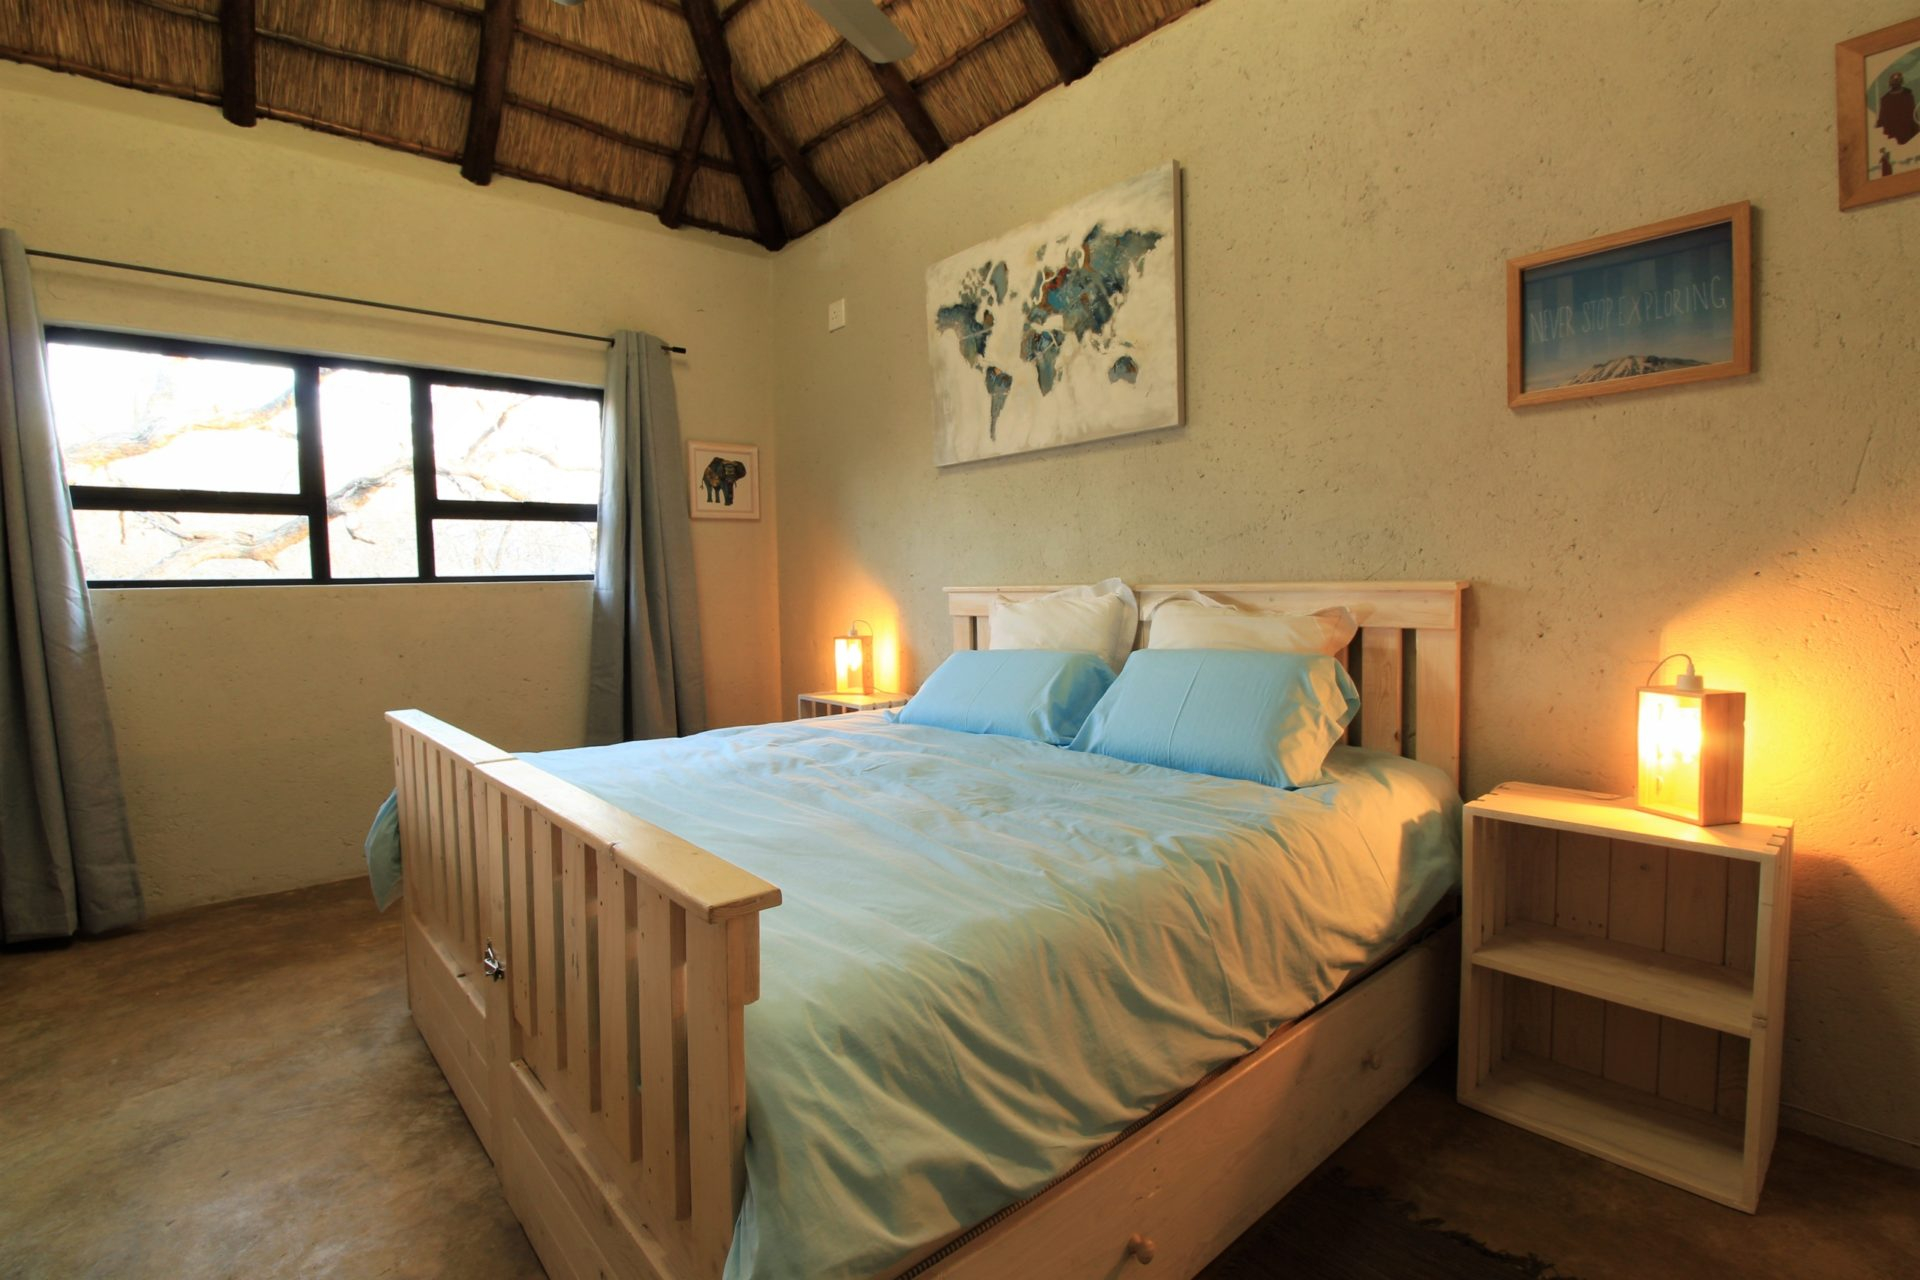 Leadwood Self Catering Guesthouse in Marloth Park, Mpumalanga, South Africa - upstairs bedroom with 4 x sleeping space